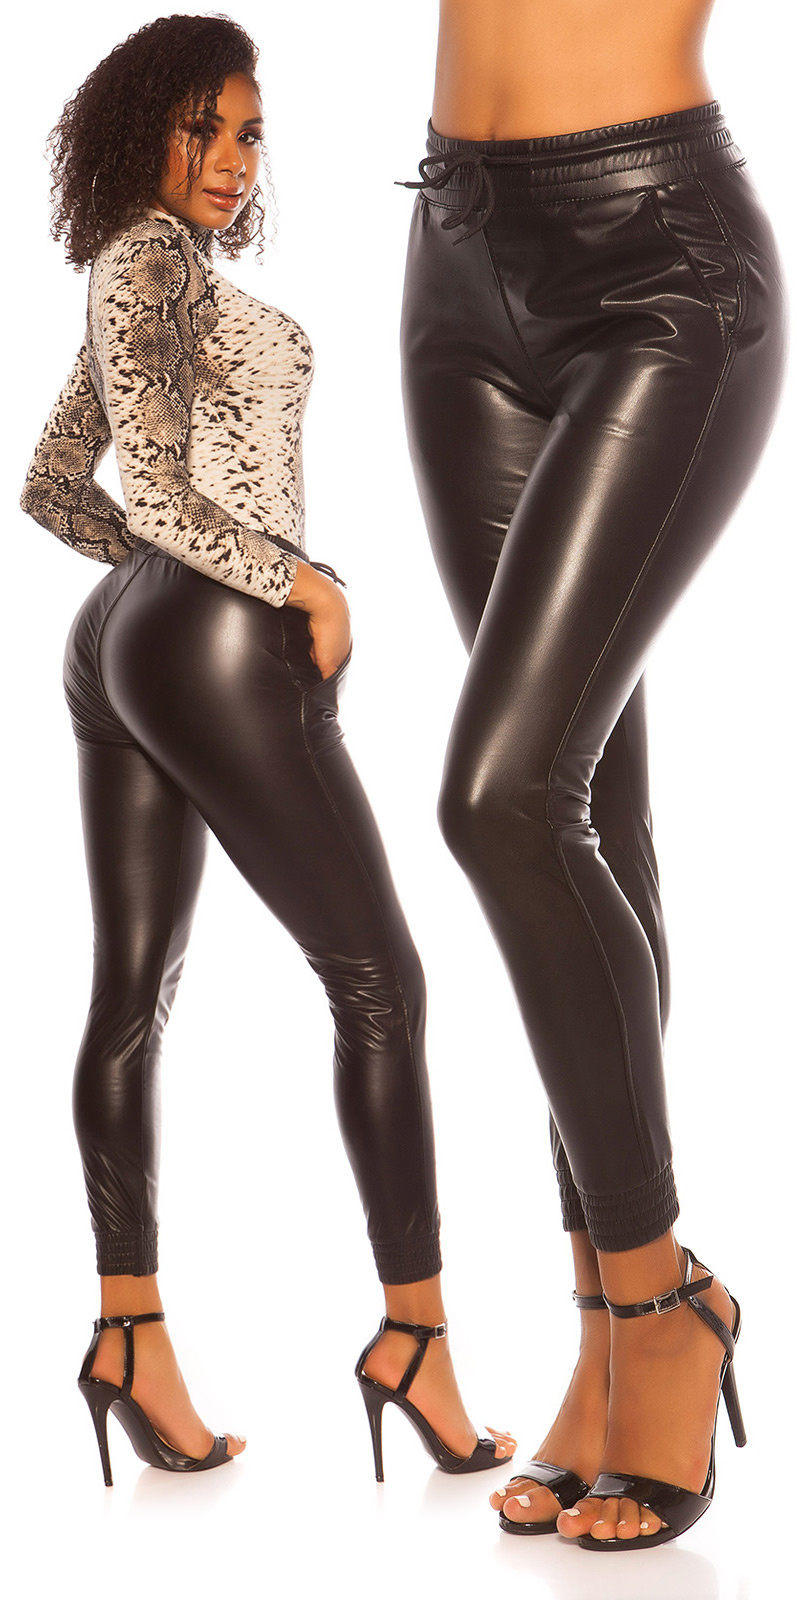 Sexy Leatherlook Pants with elastic waist band Black